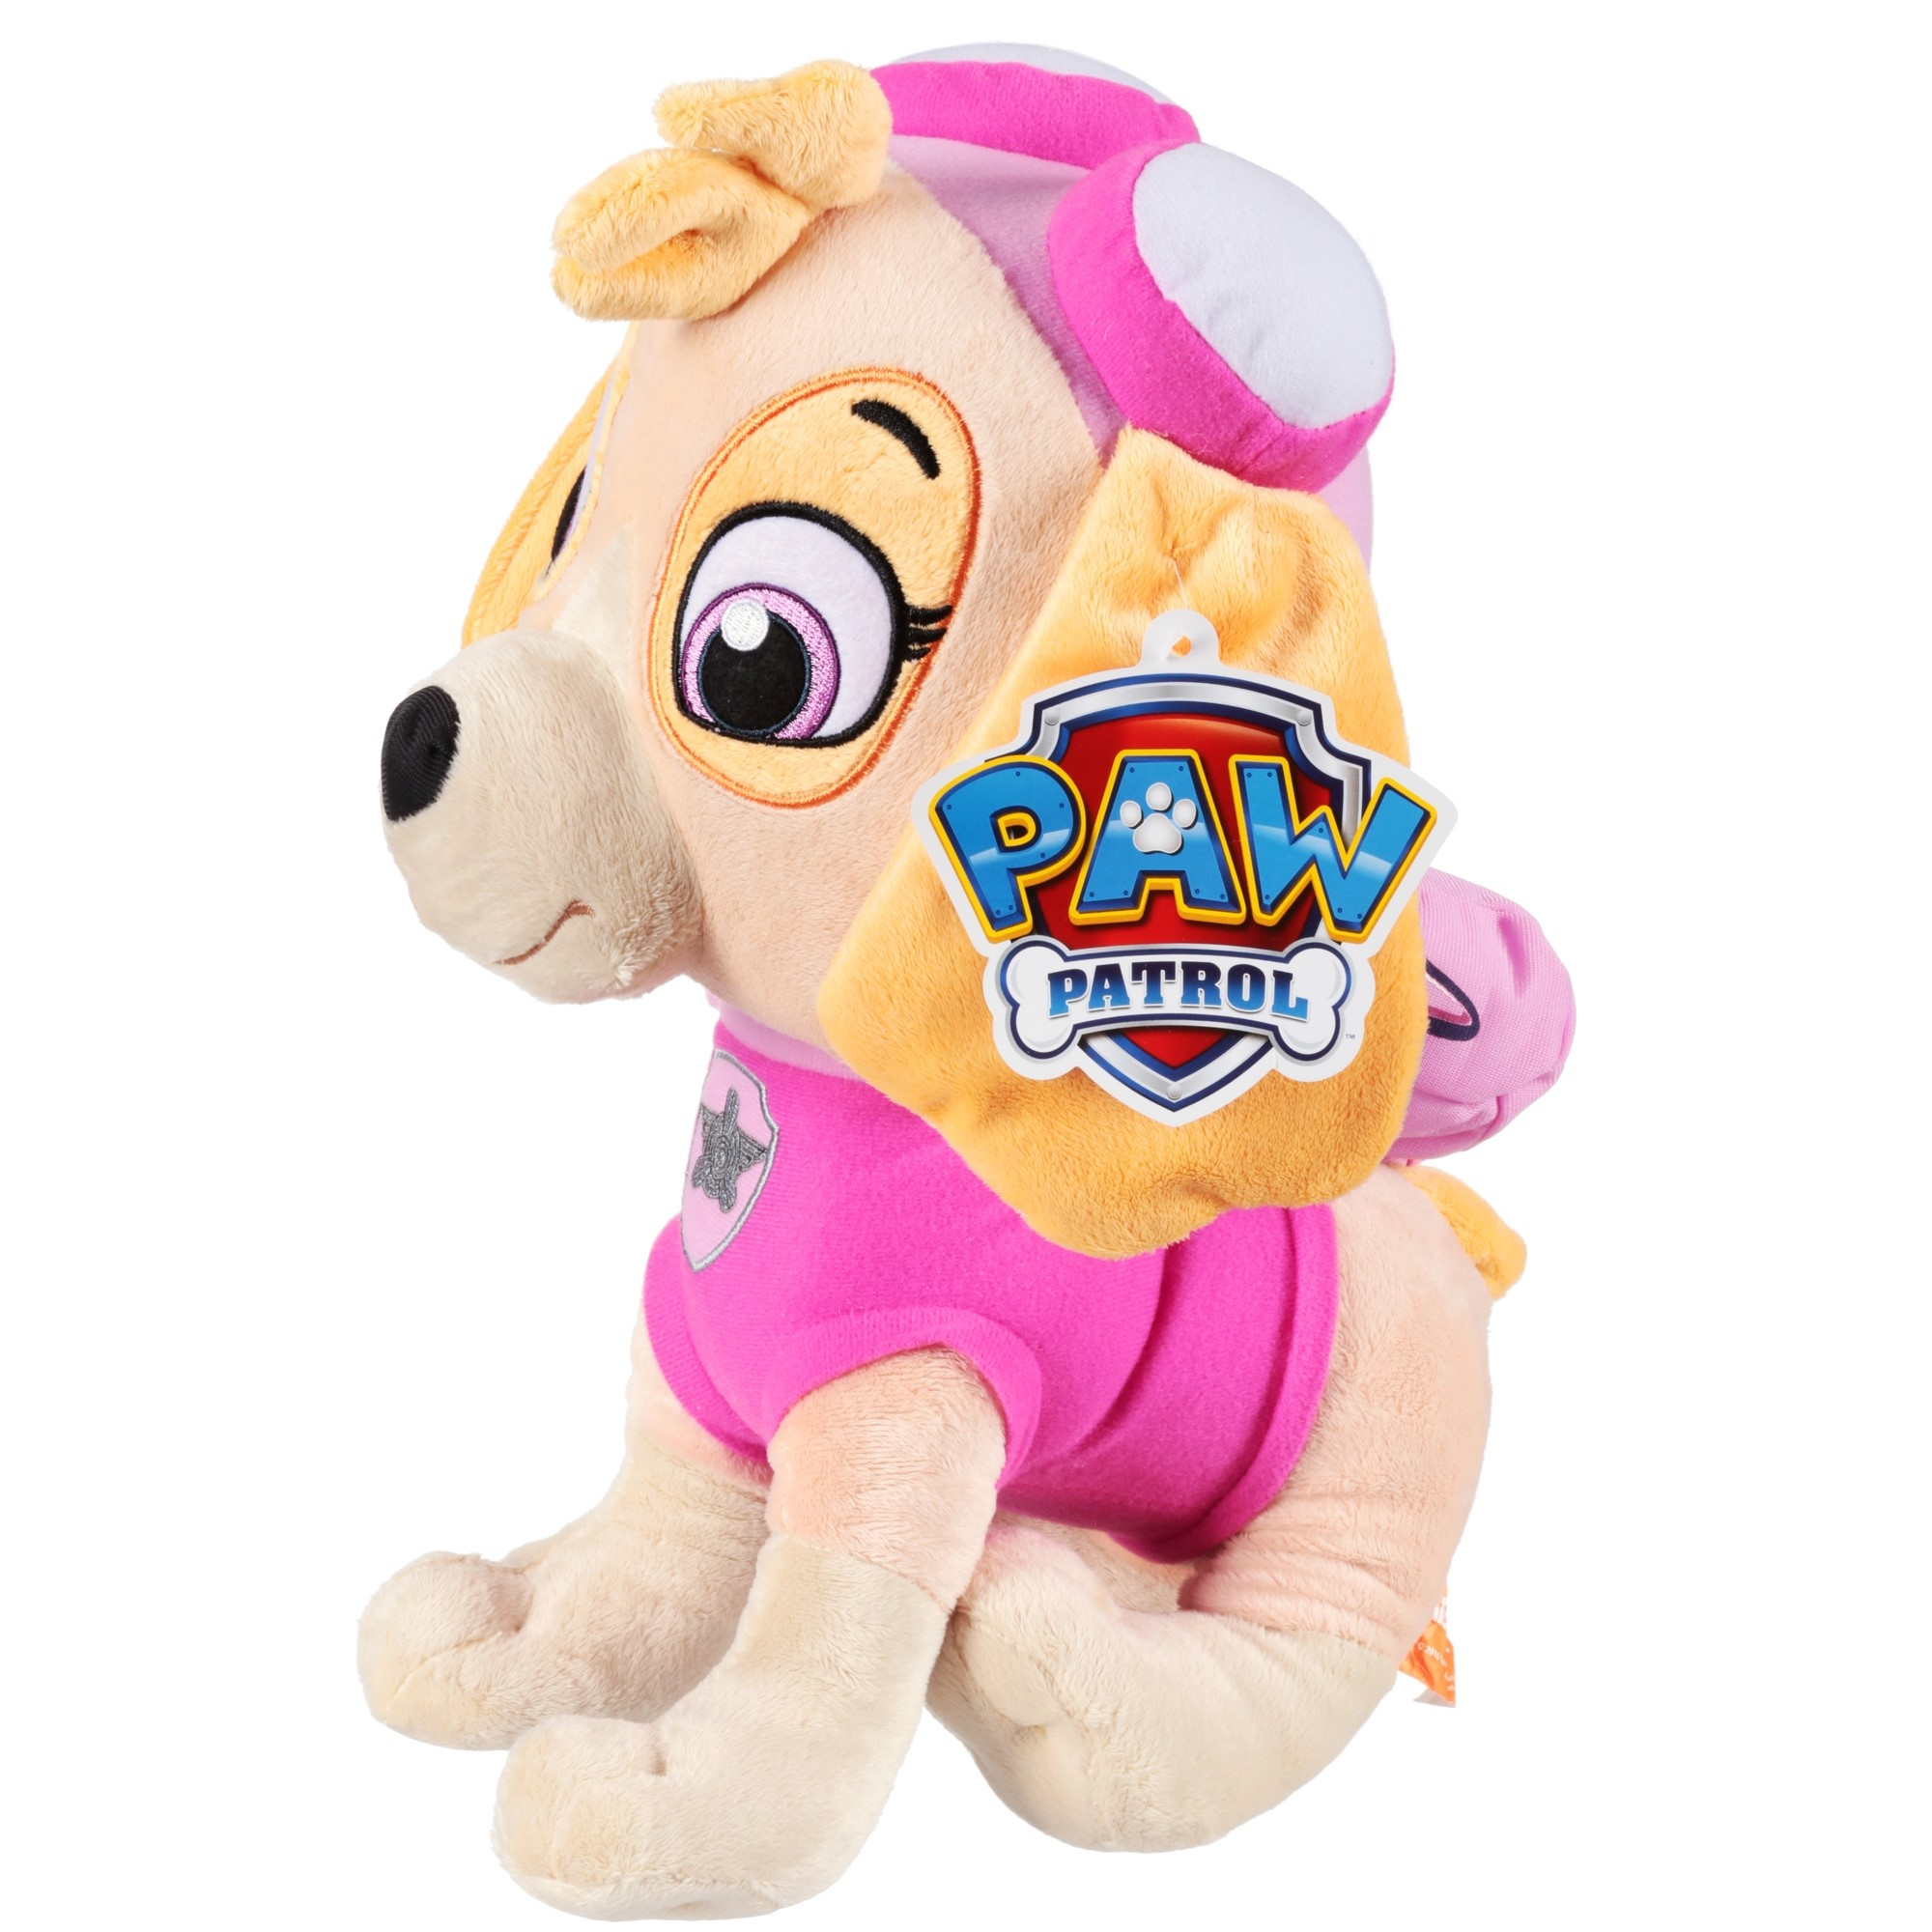 Funhouse Paw Patrol The One and Only Cuddle Pillow